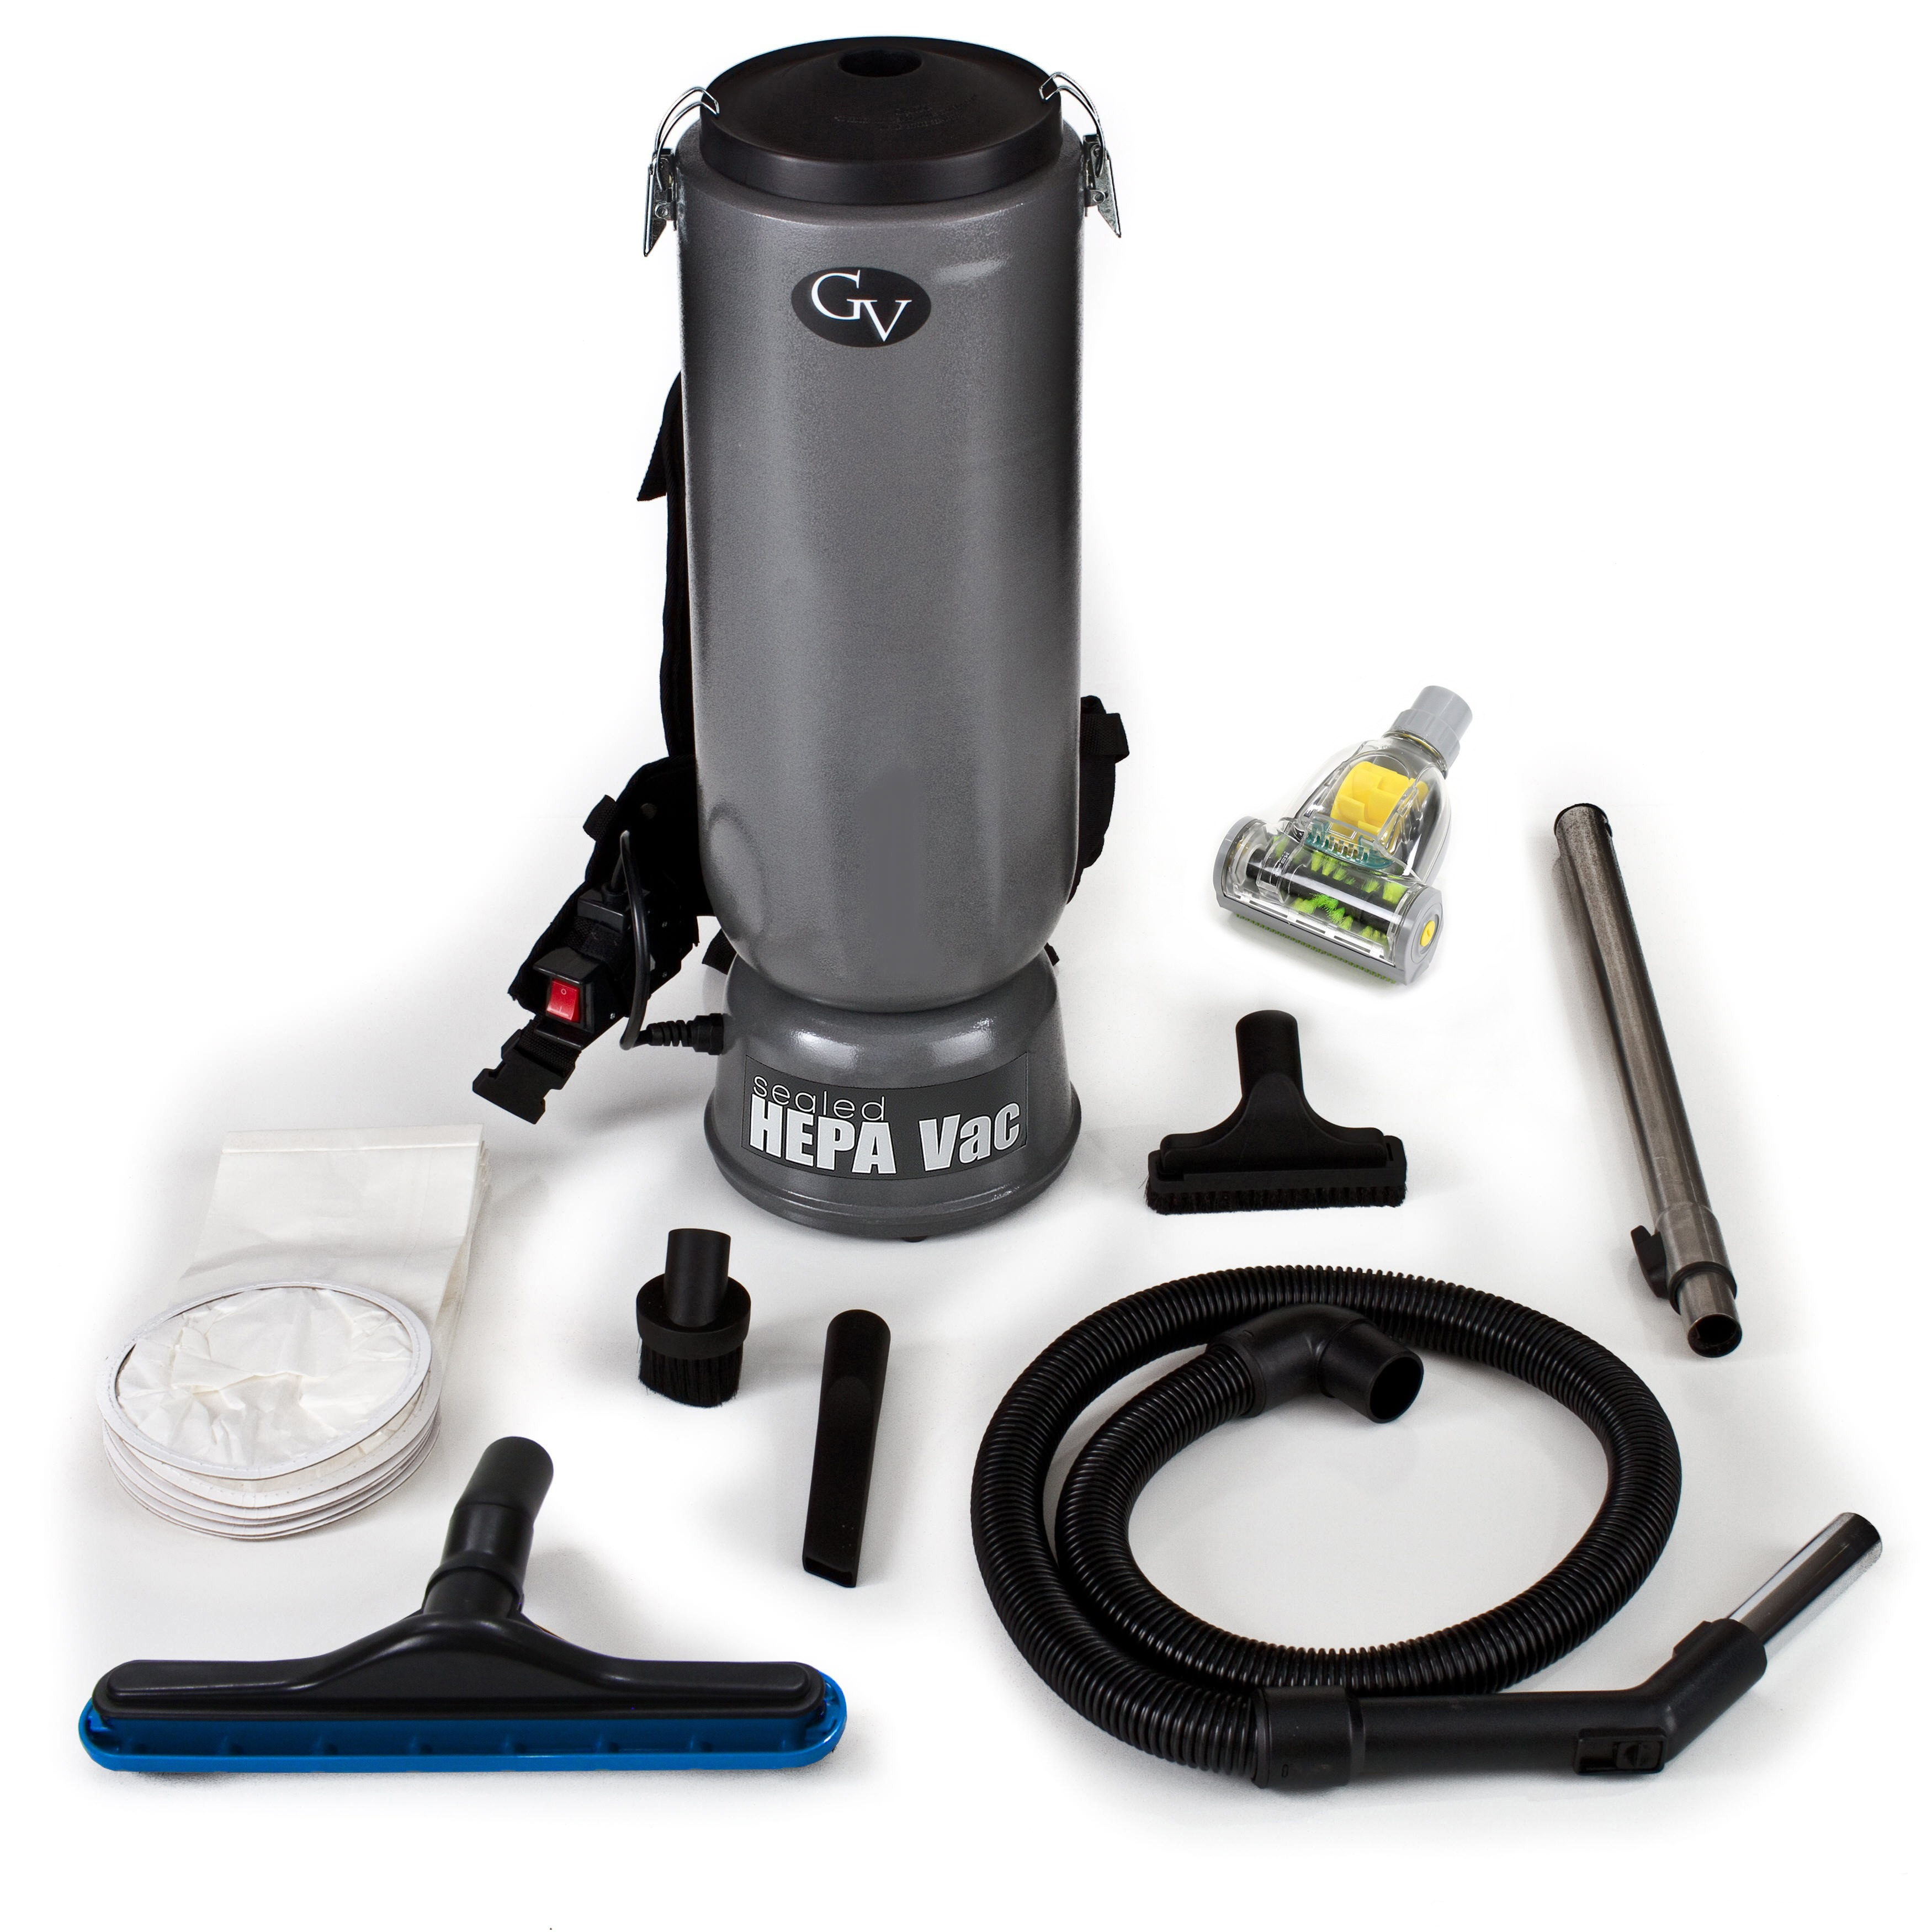 GV 10-quart Commercial Backpack Vacuum with Tools, Black